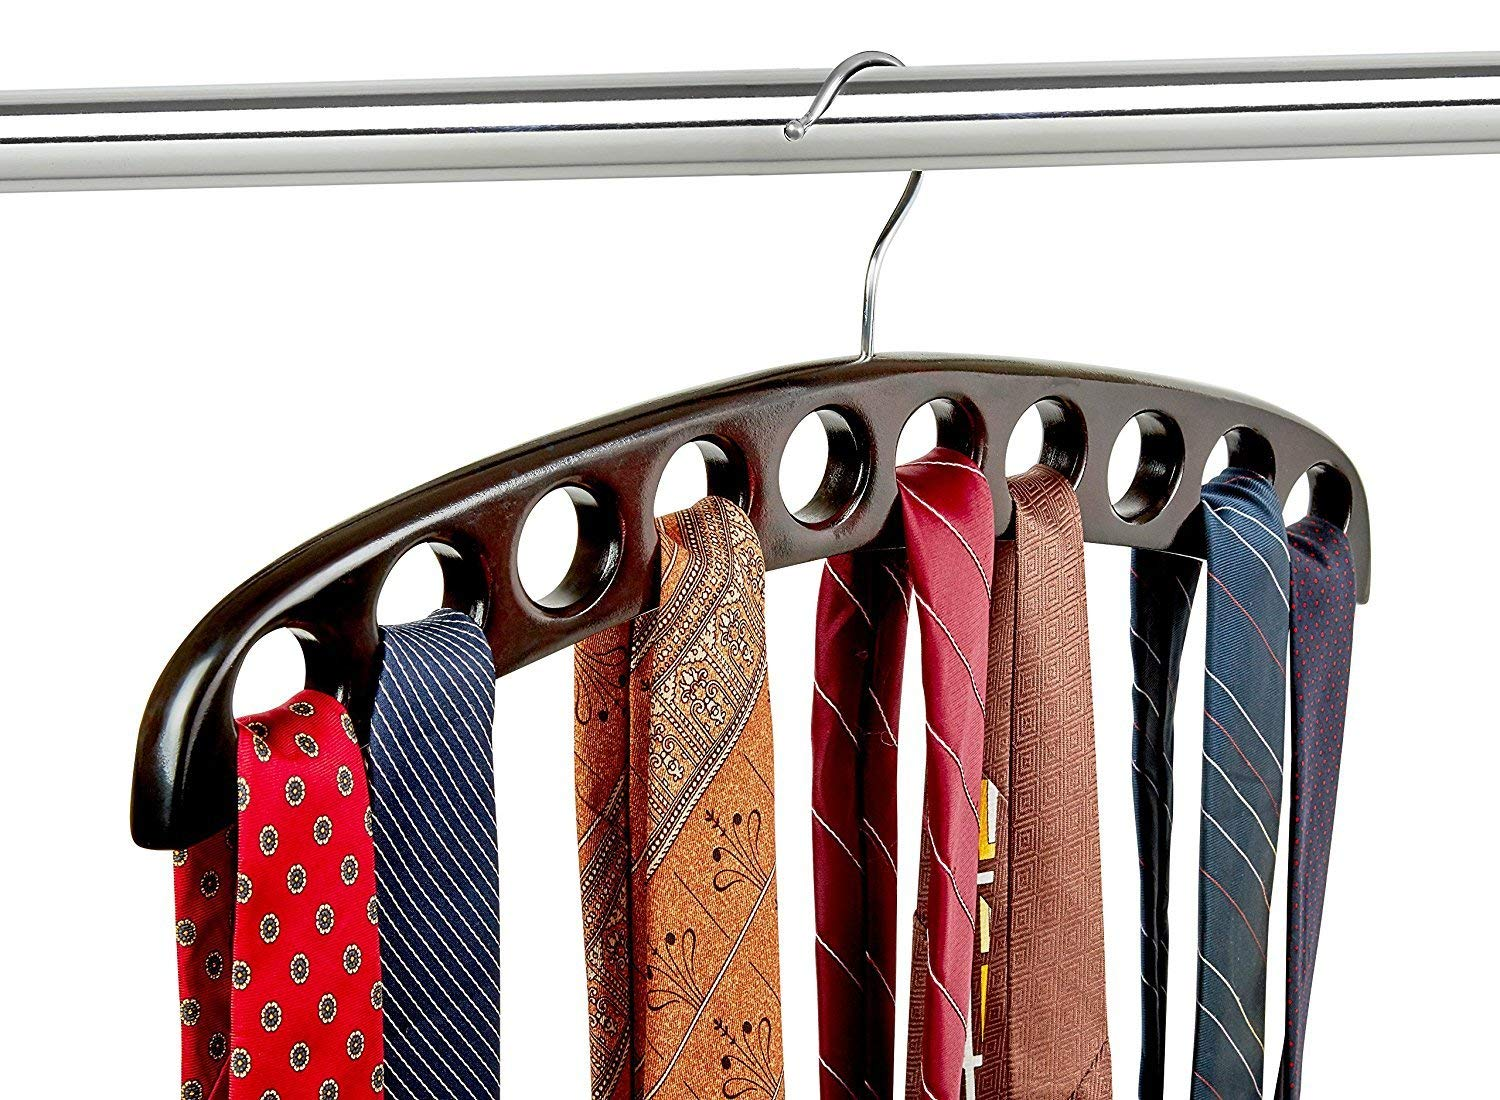 Scarf Hanger Mahogany Color Closet Organizer and 10 Hole Wooden Tie Rack Hangers for Space Saving Solution and Perfect Space Saving Closet Makeover